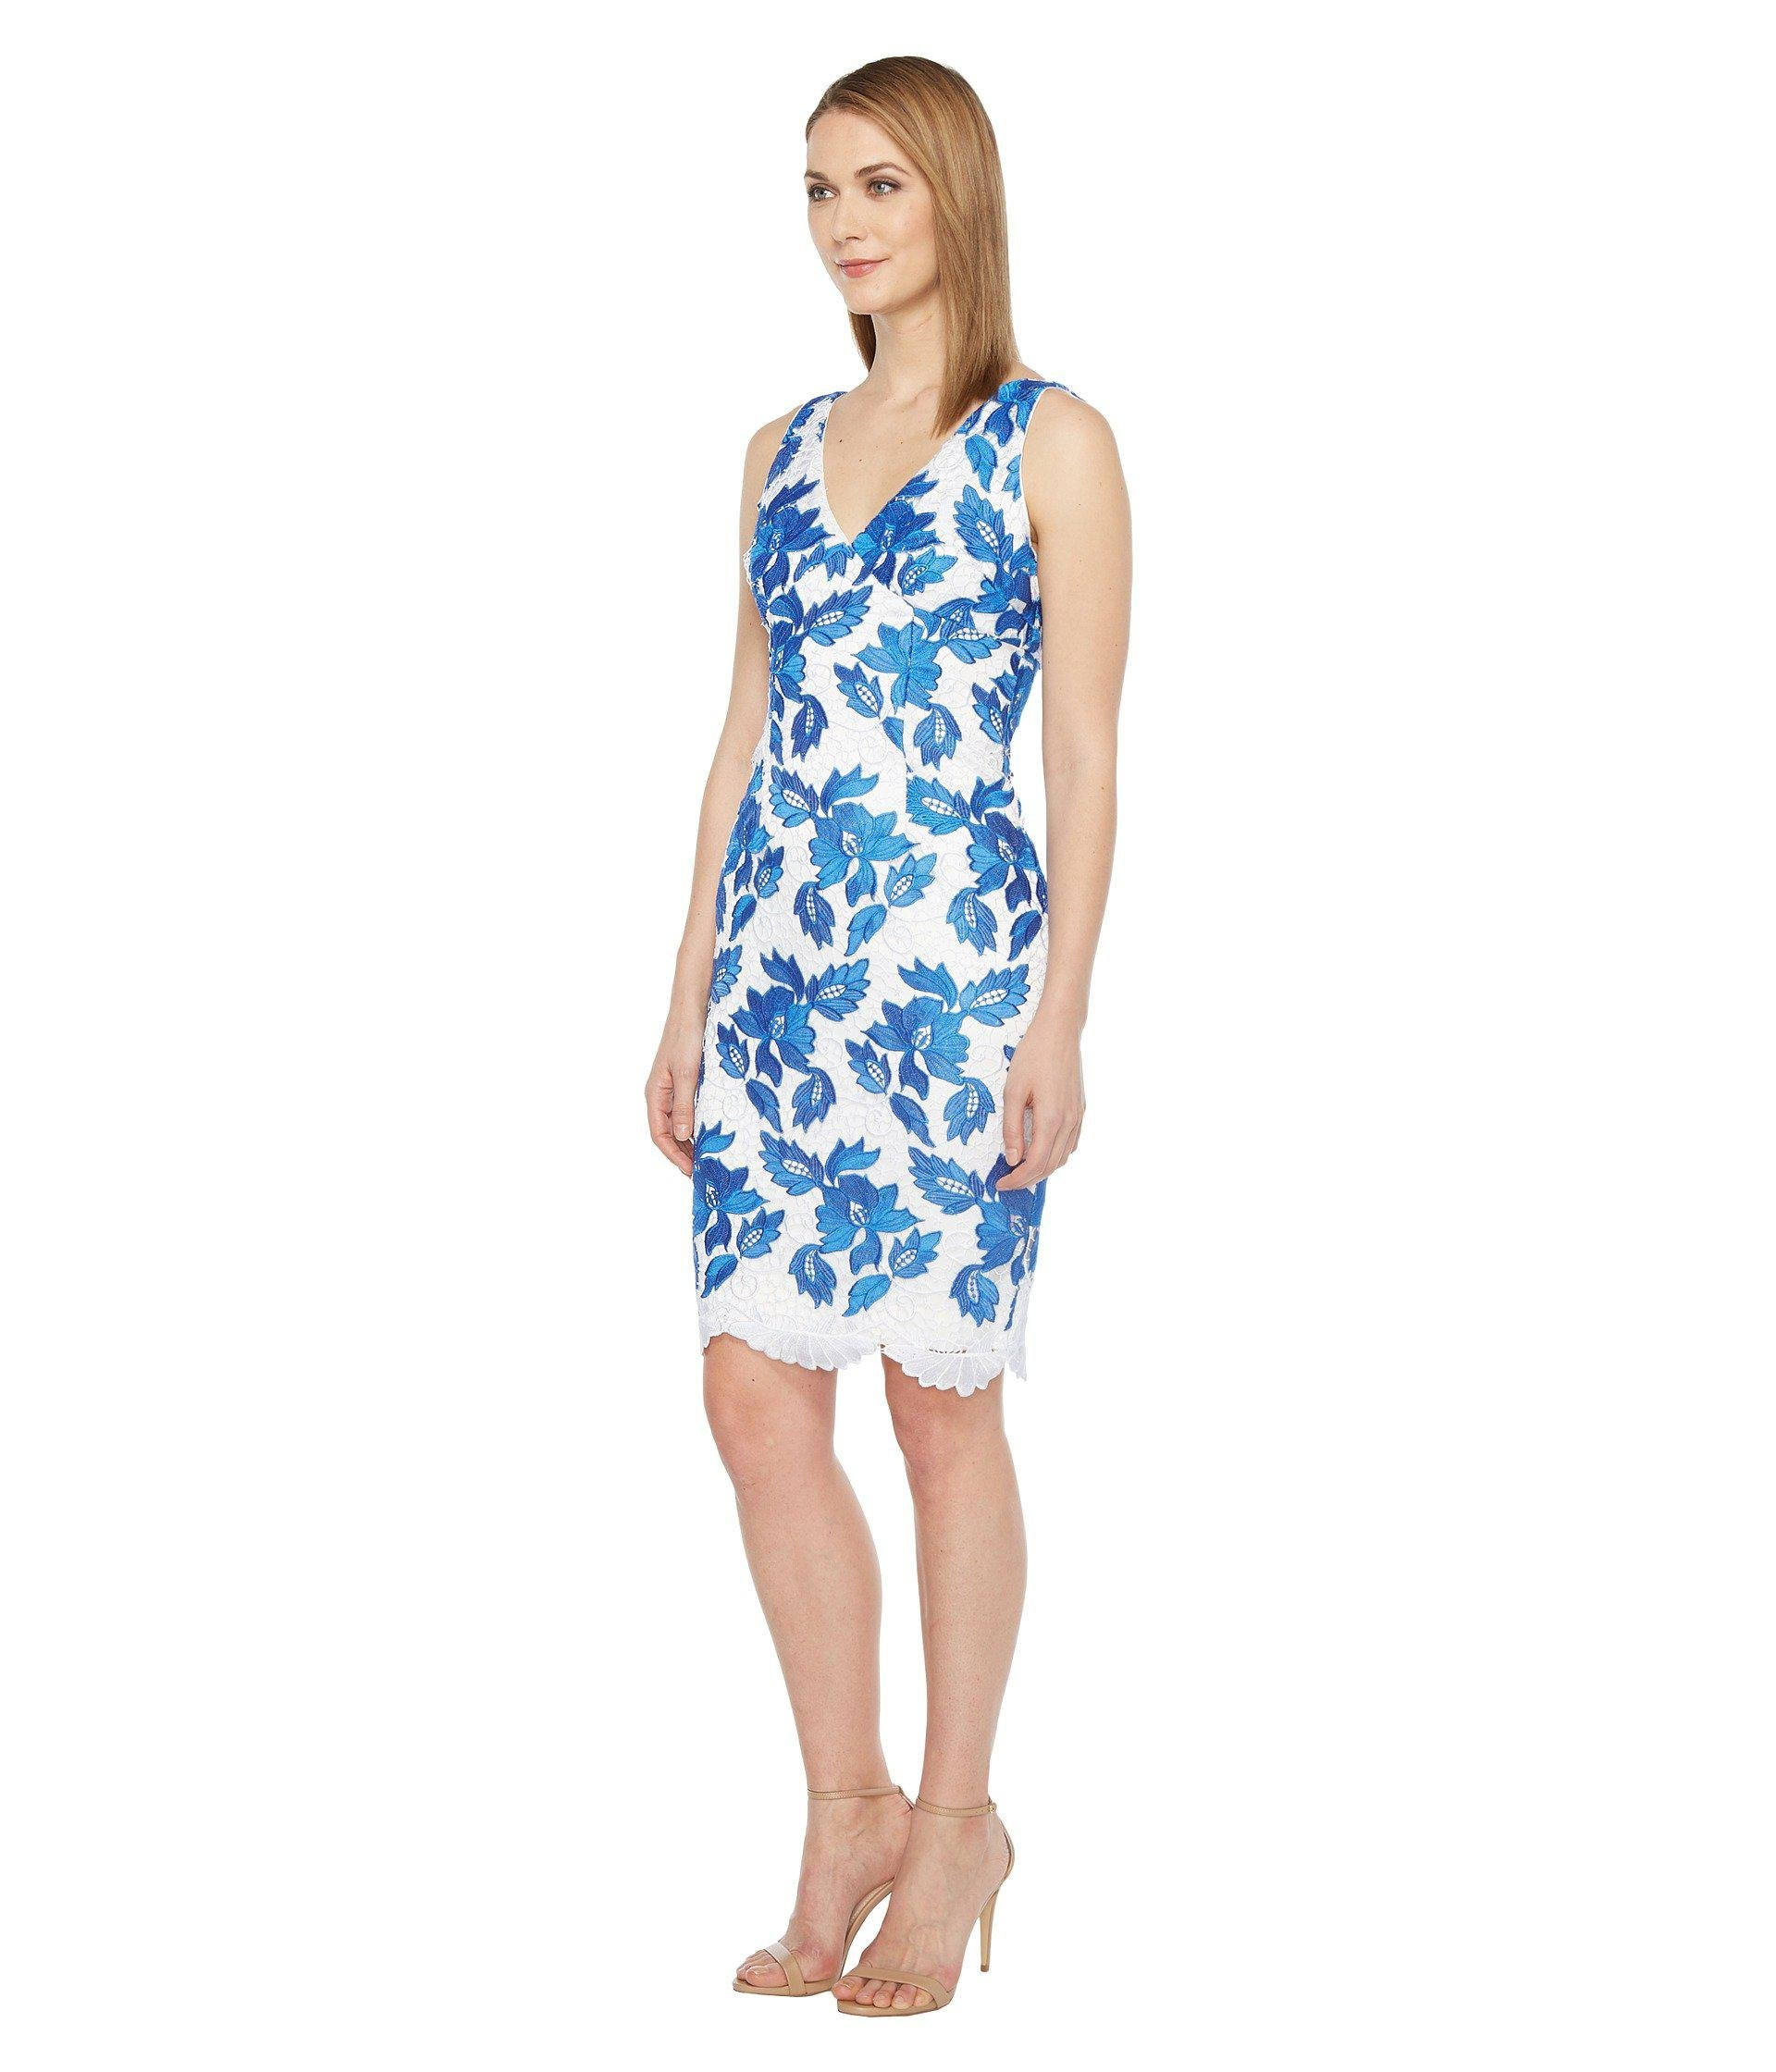 Lyst - Adrianna Papell Sleeveless V-neck Floral Two-tone Lace Dress in Blue  - Save 42% a7fb697a6